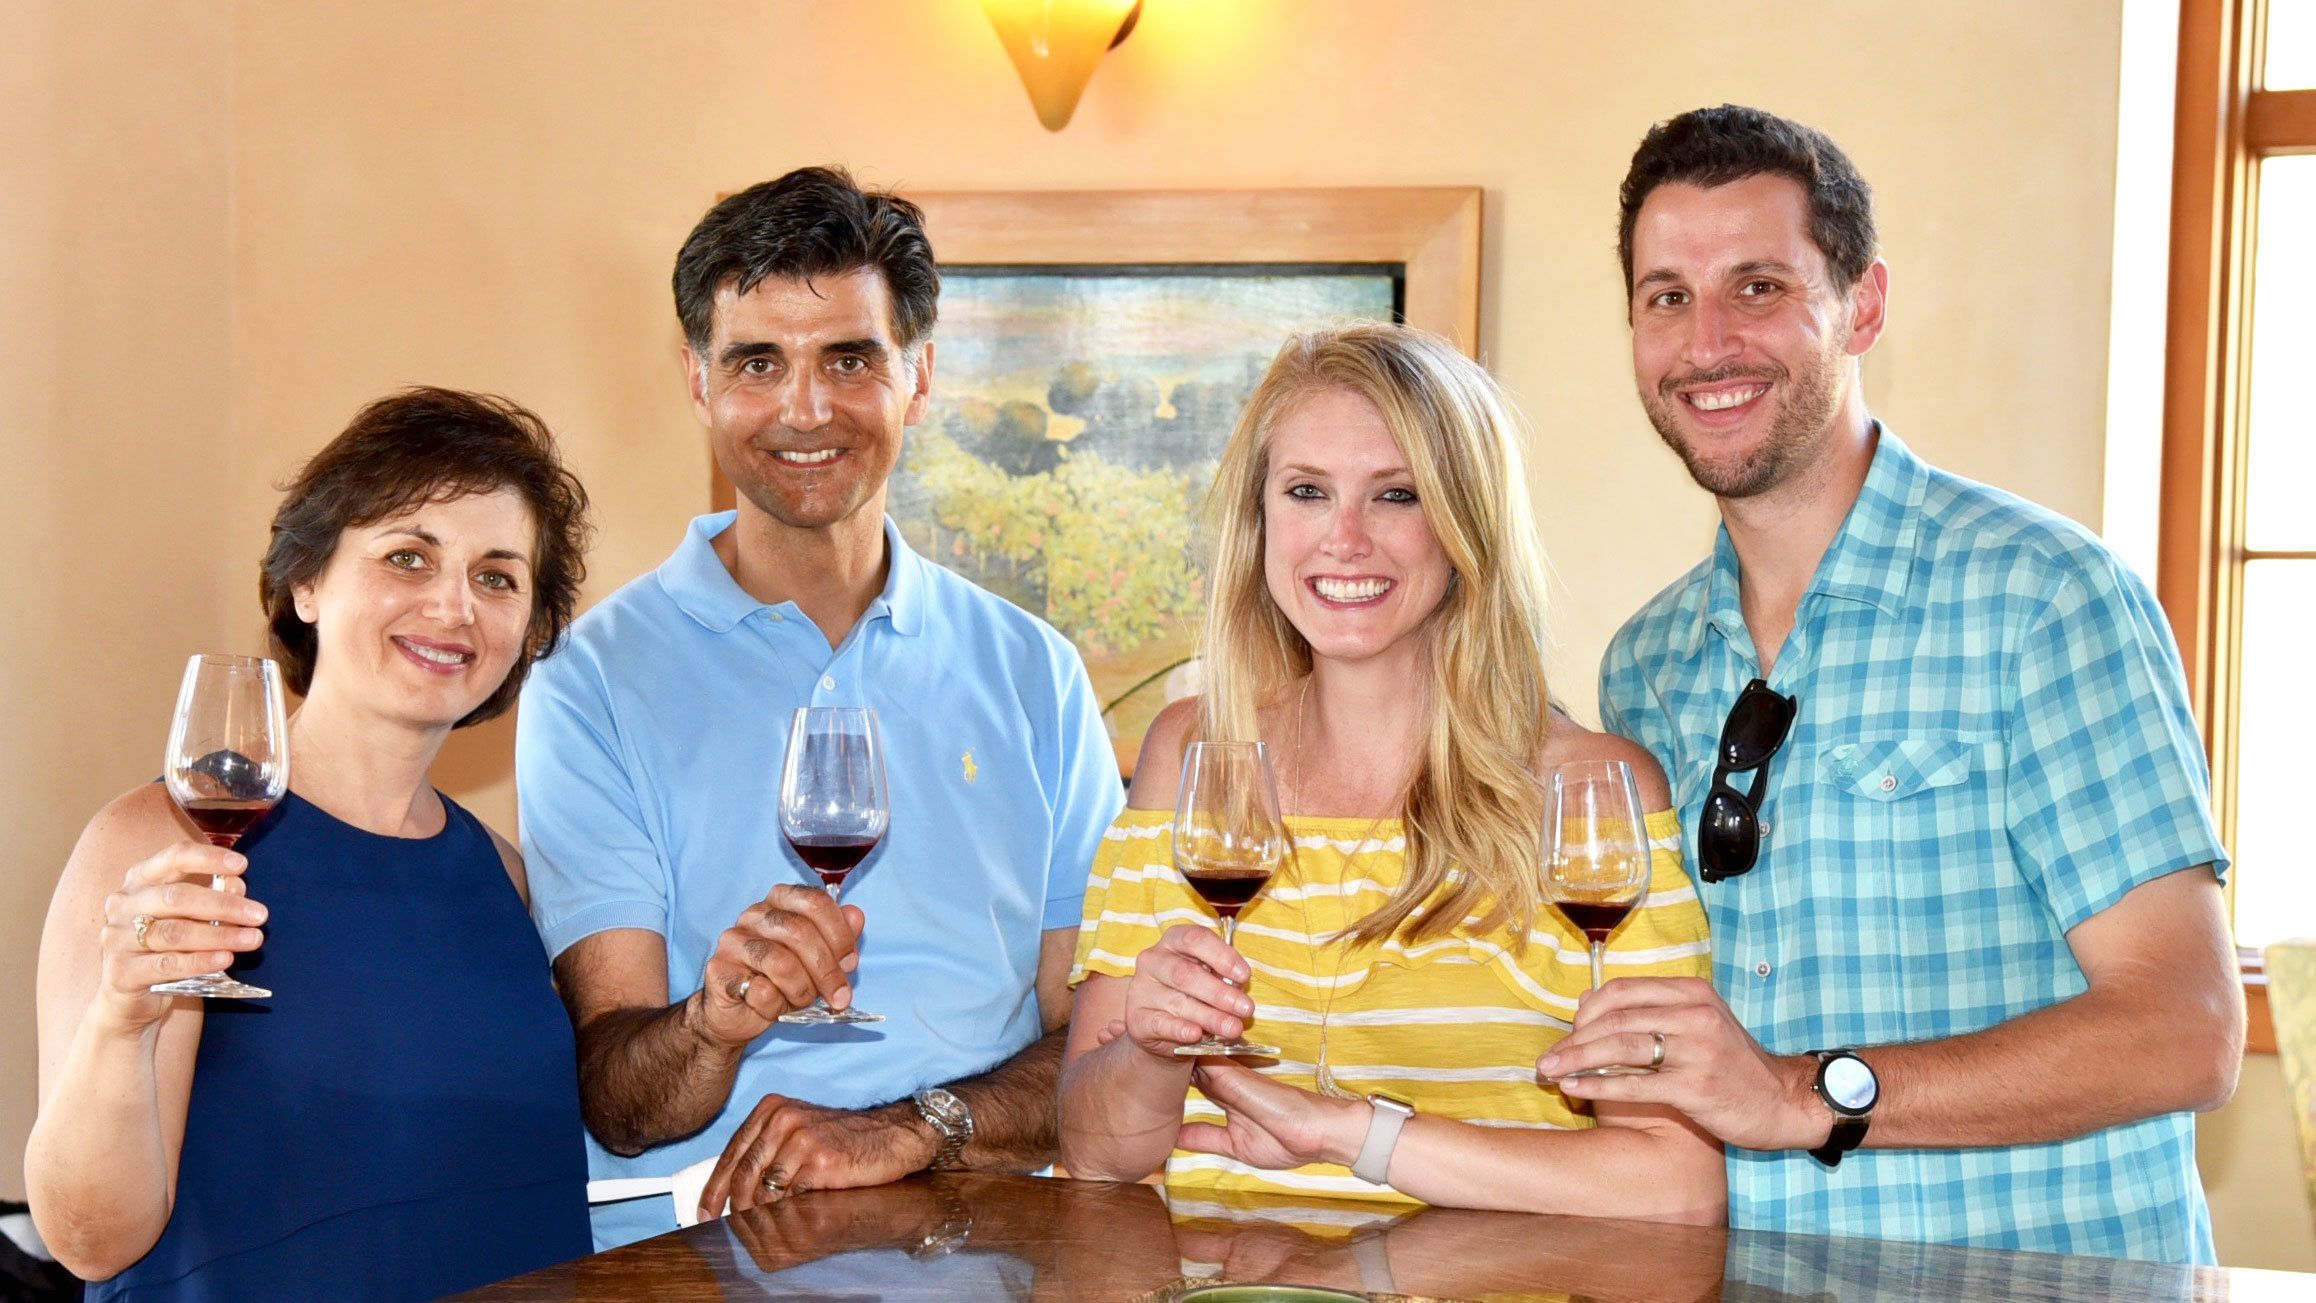 Two couples enjoying wine tasting at winery in Napa Valley